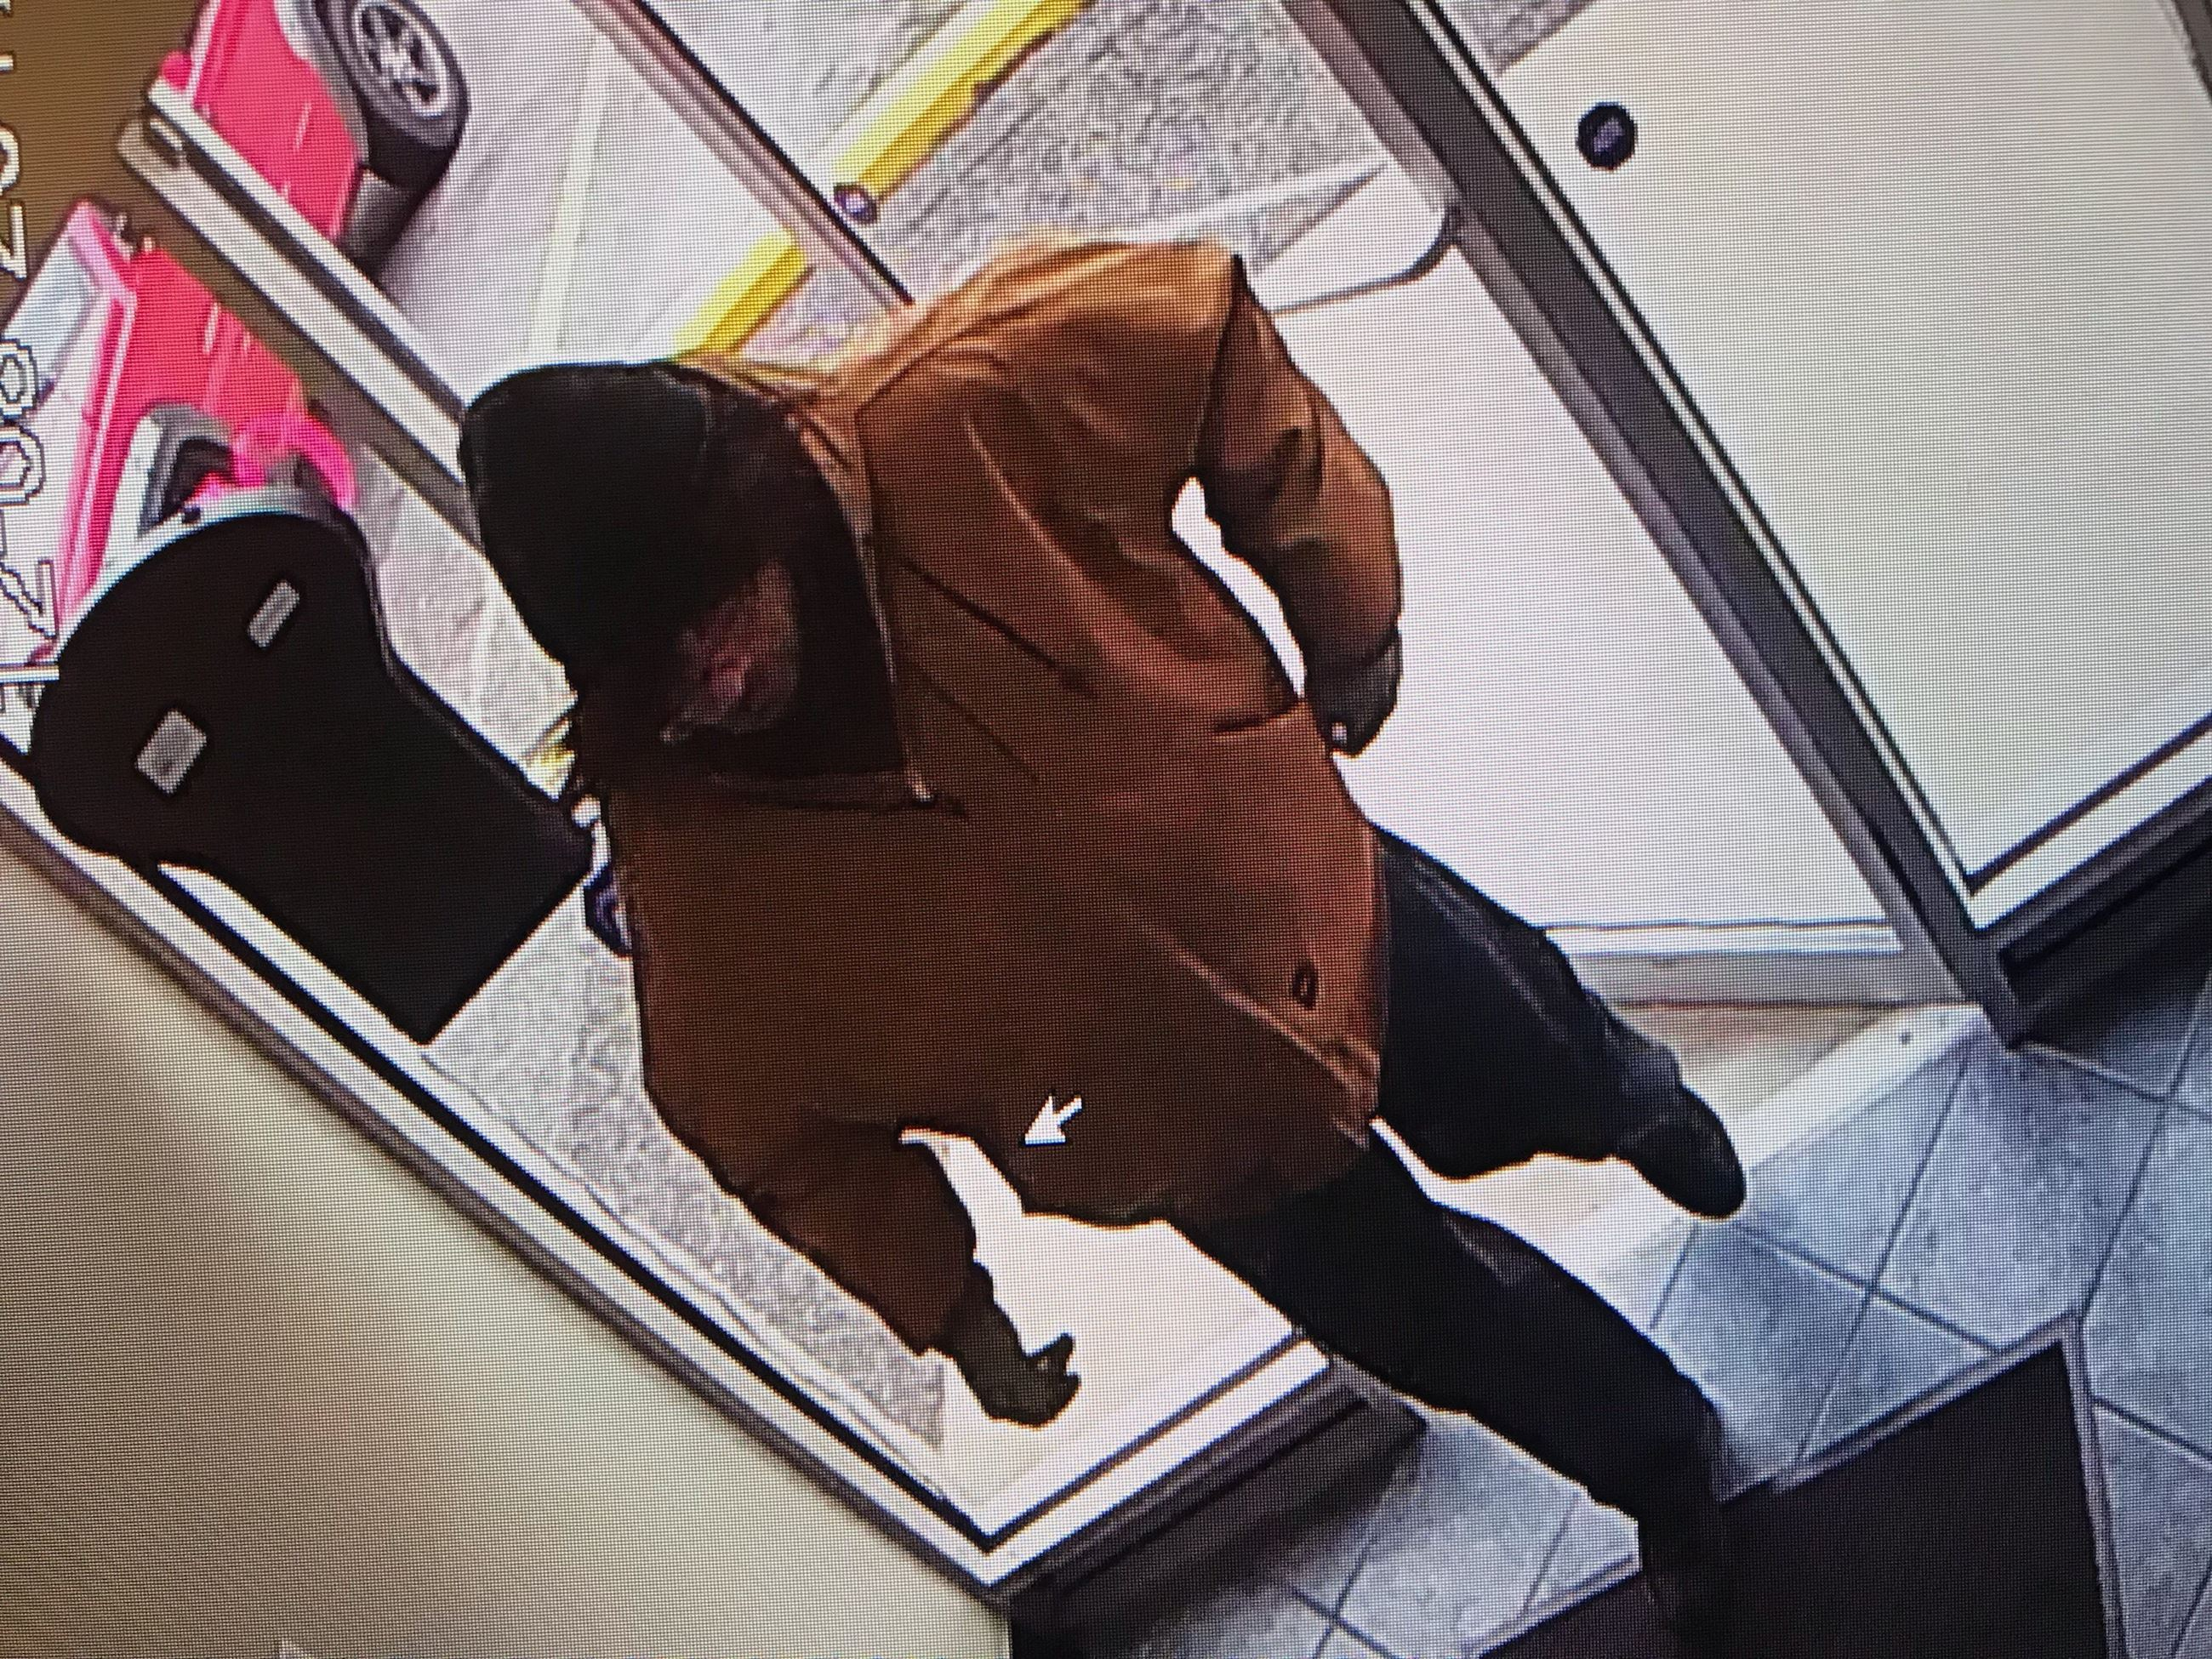 A picture of the robbery suspect from Friday, Dec. 8, 2017.